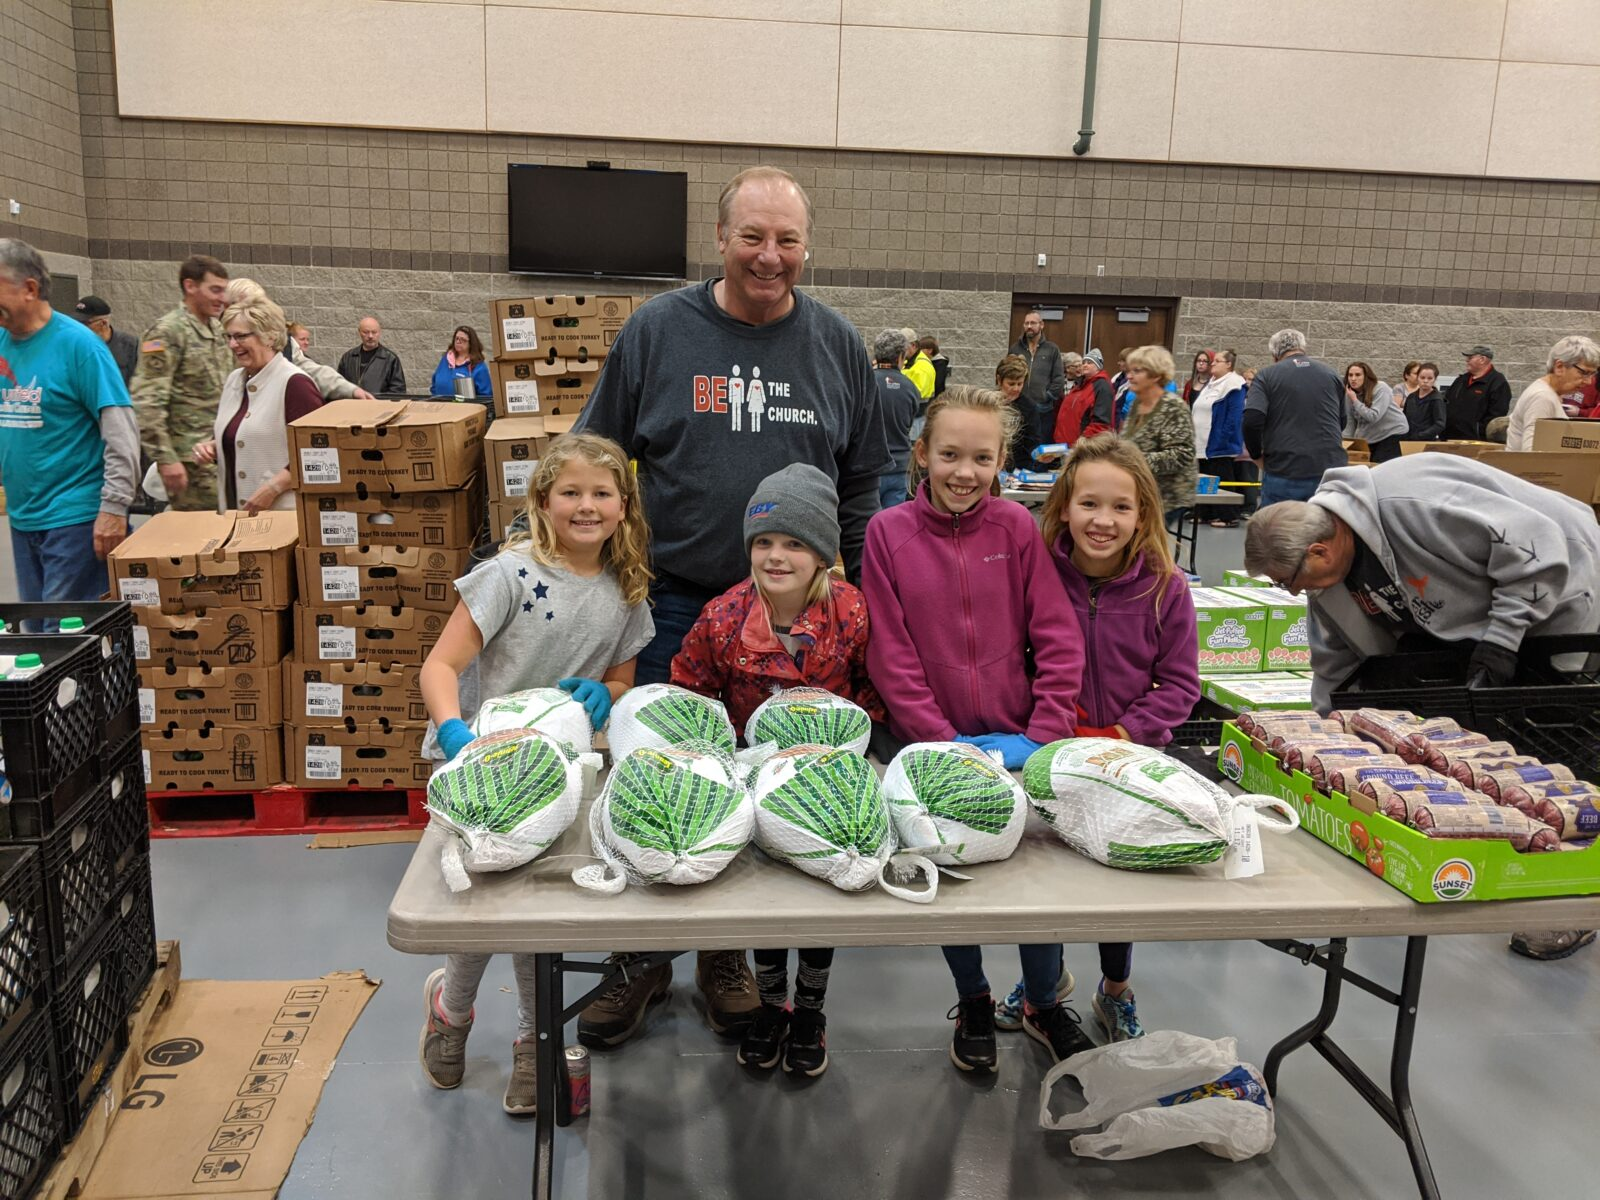 First Church Giving Back